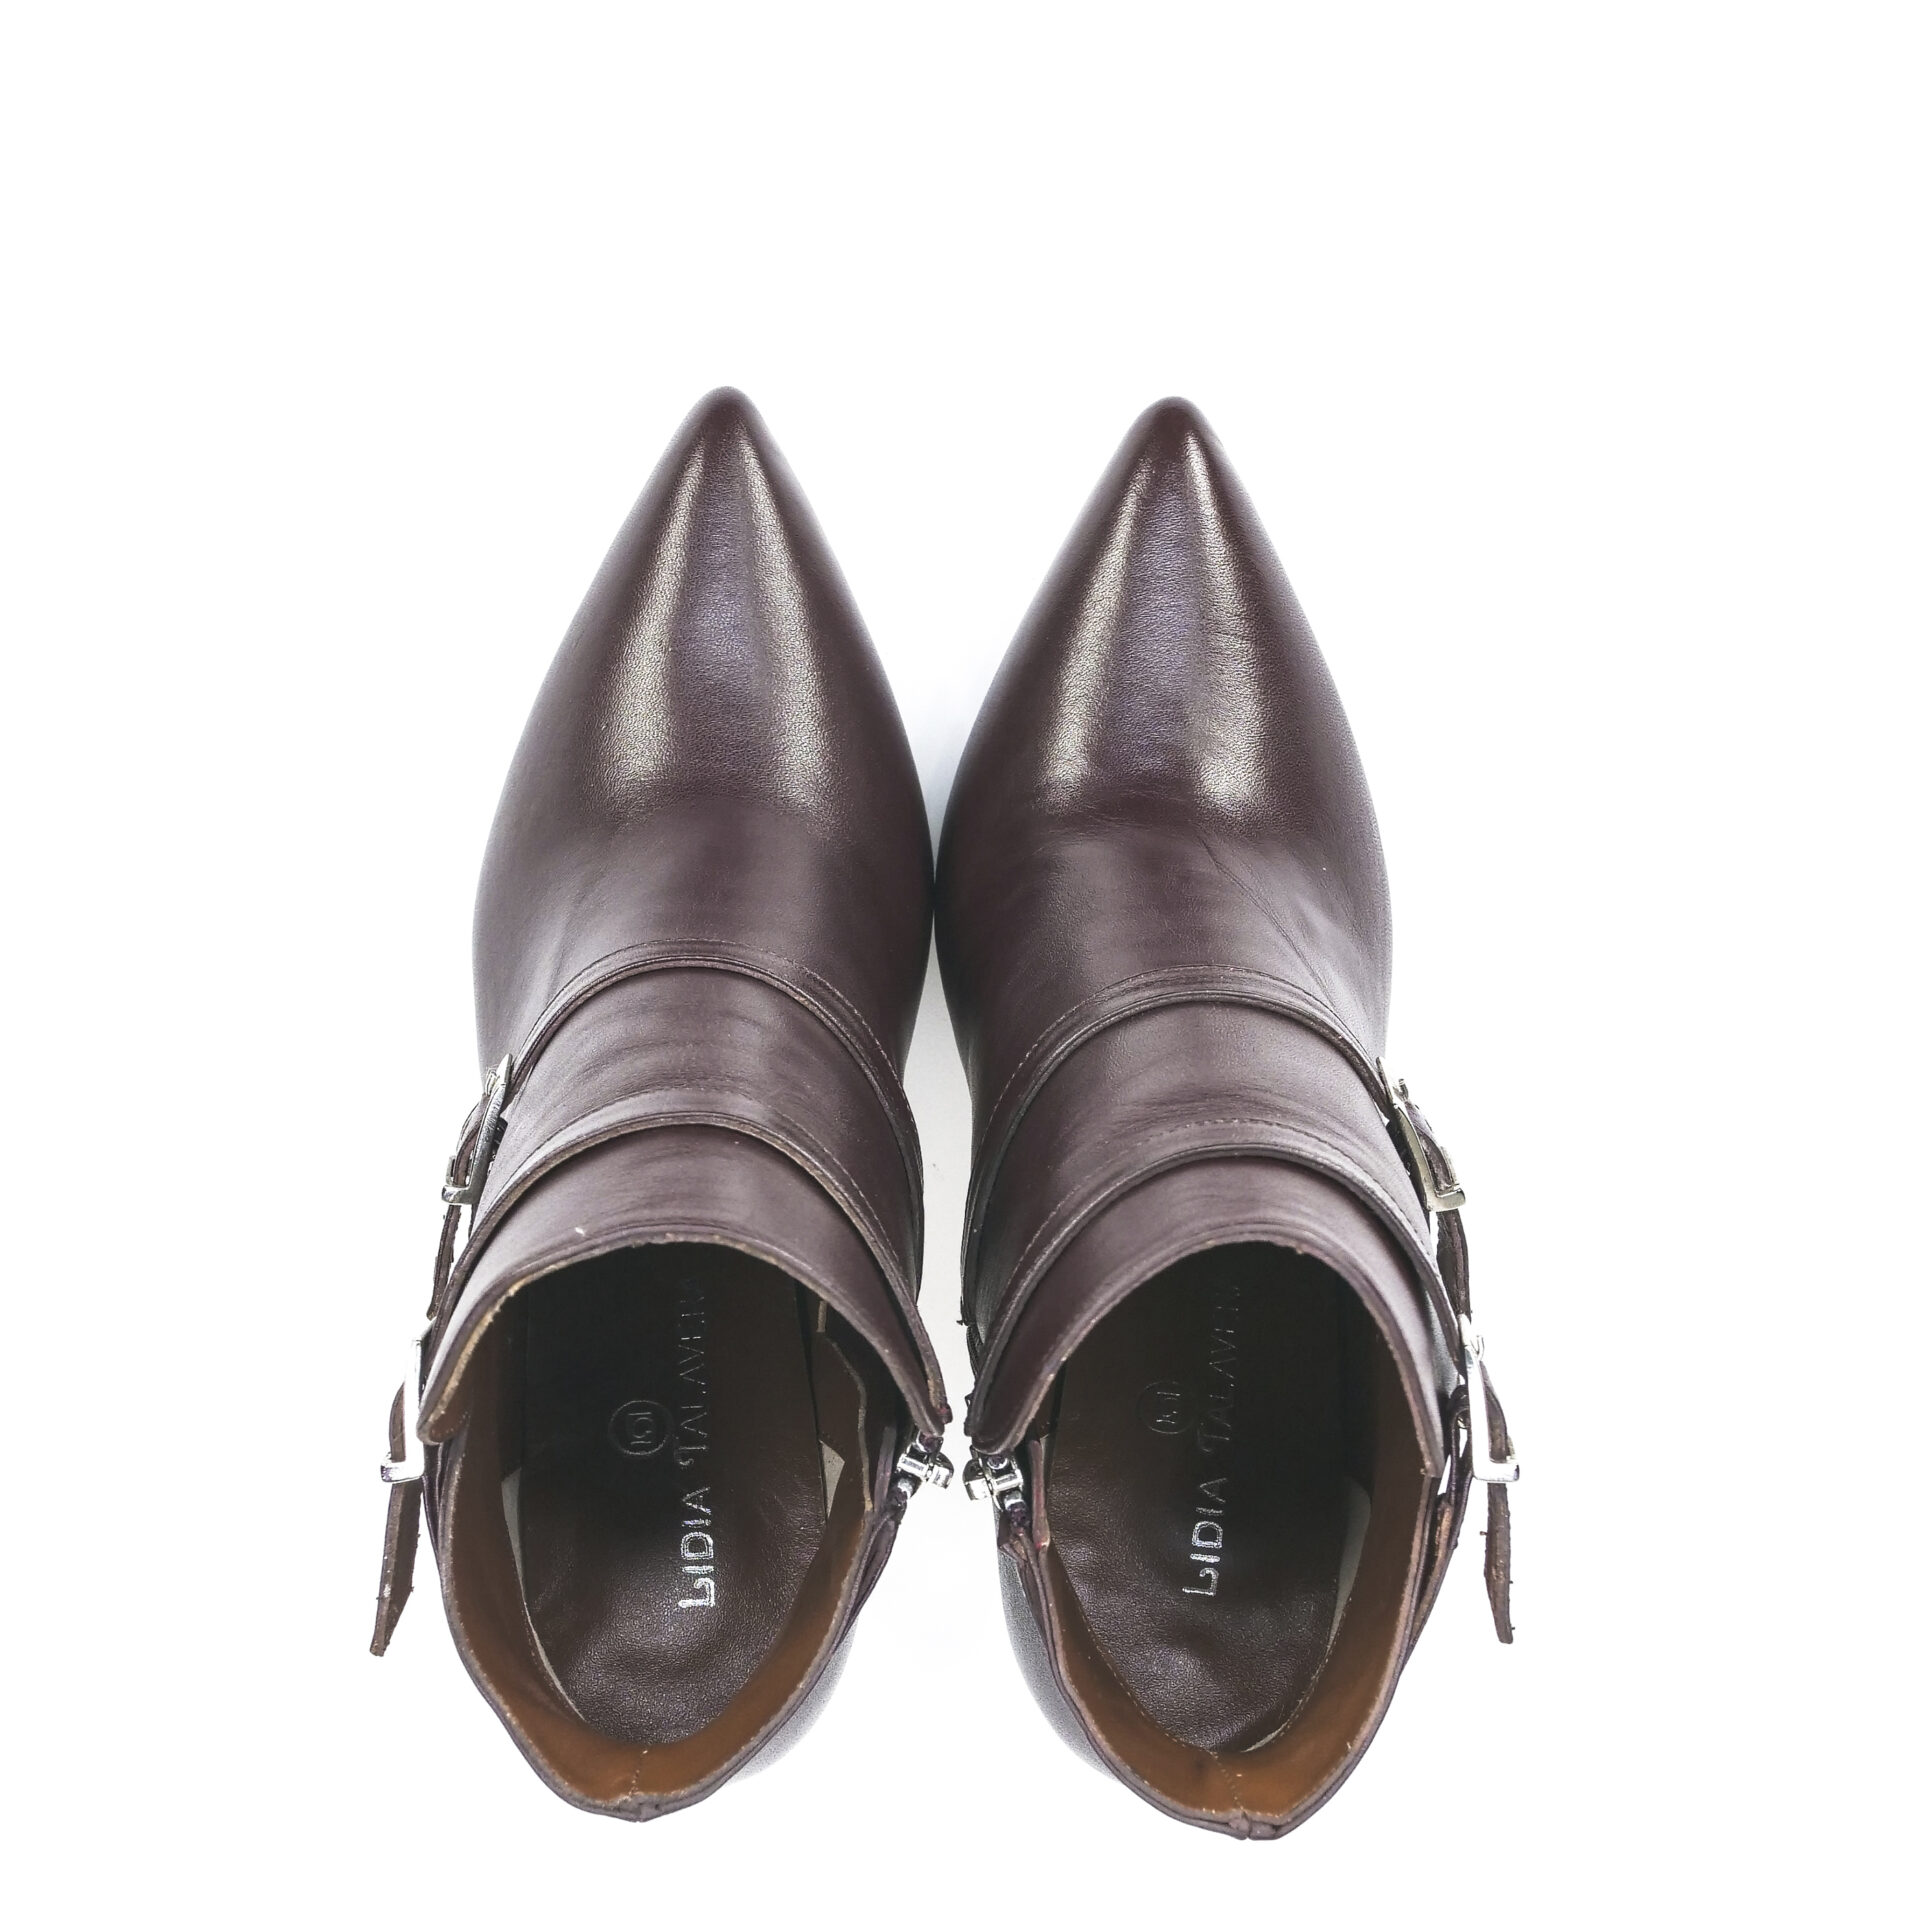 brown leather pointed toe booties with straps and buckles